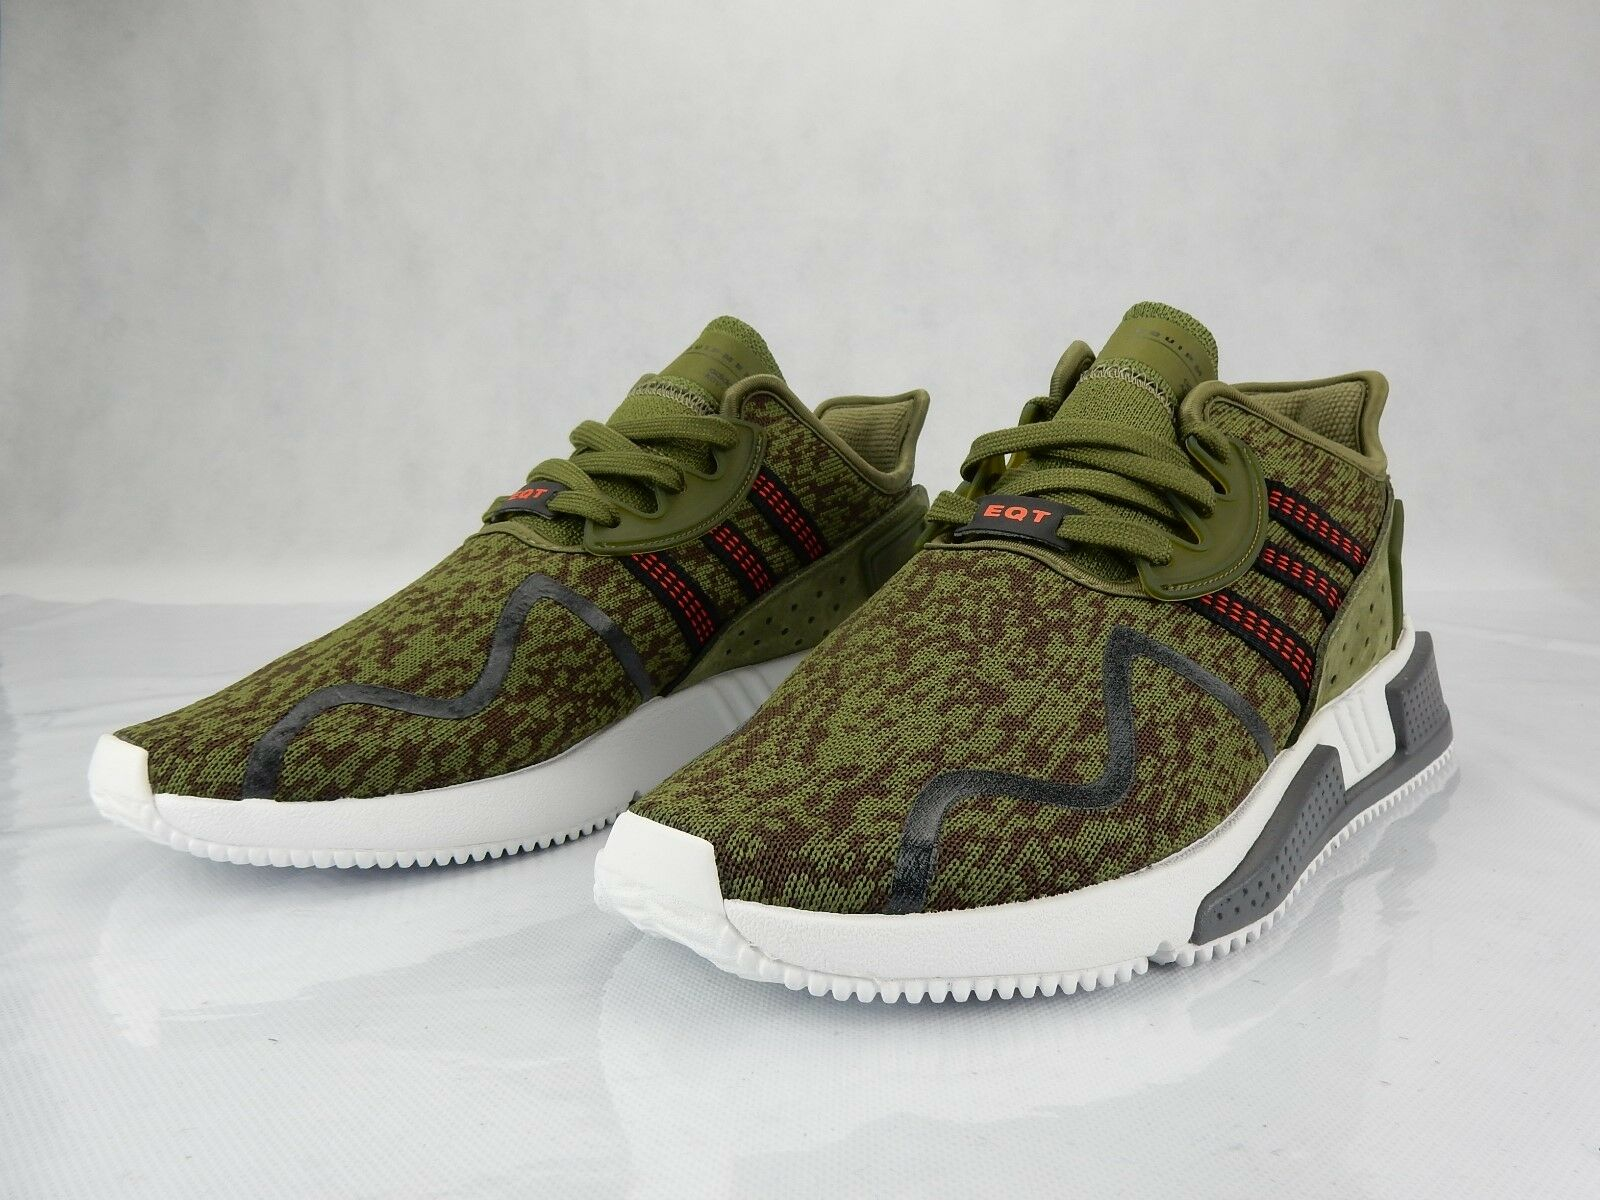 Adidas EQT Cushion Adv Olive Camo Brown AC7722 Mens Shoe s Comfortable